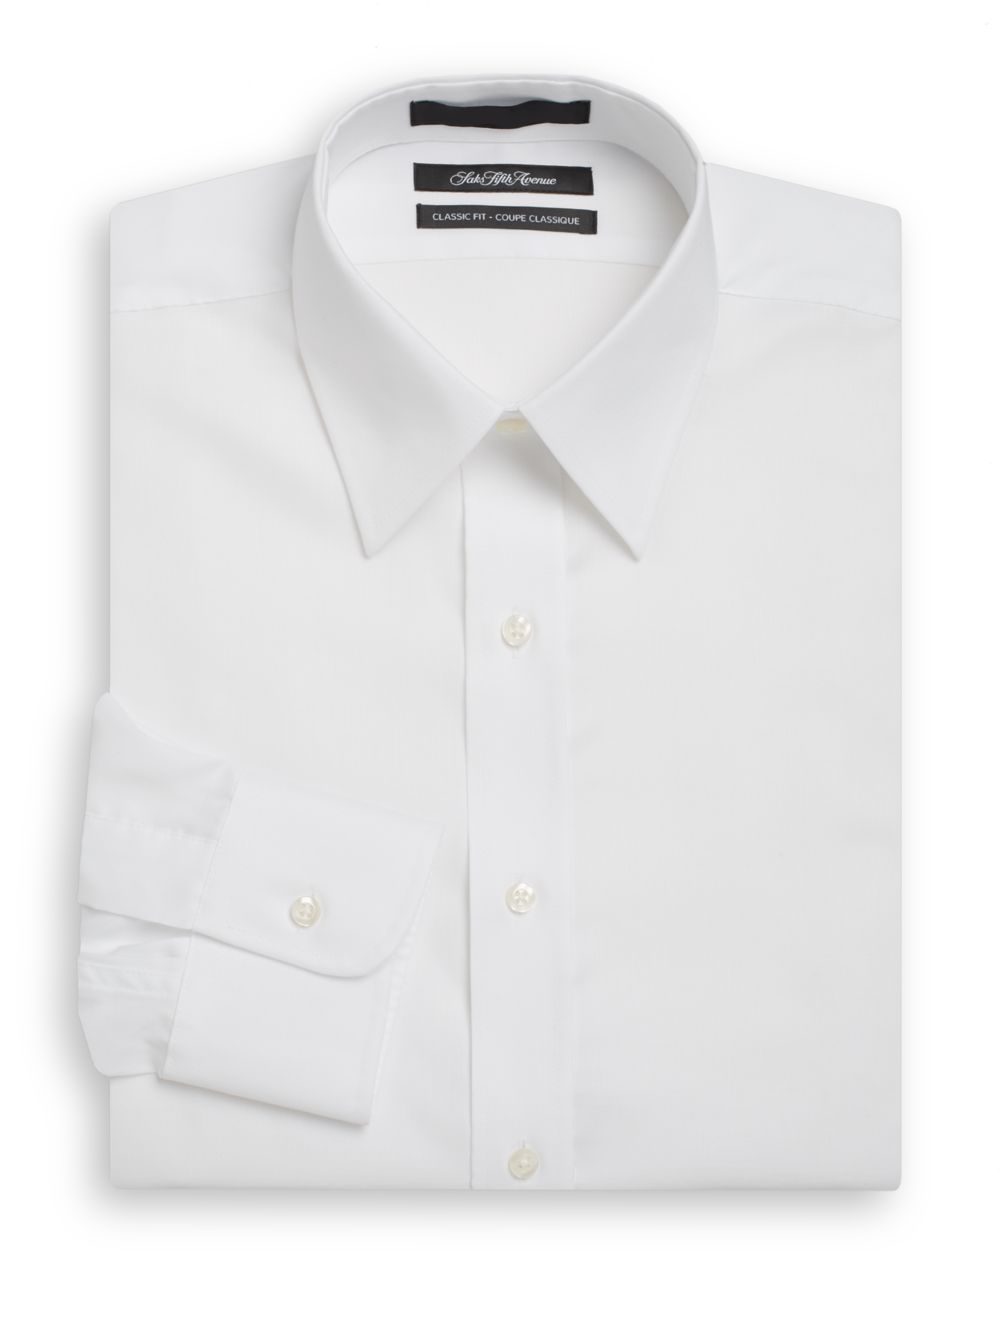 Saks fifth avenue classic fit dress shirt in white for men for Classic white dress shirt